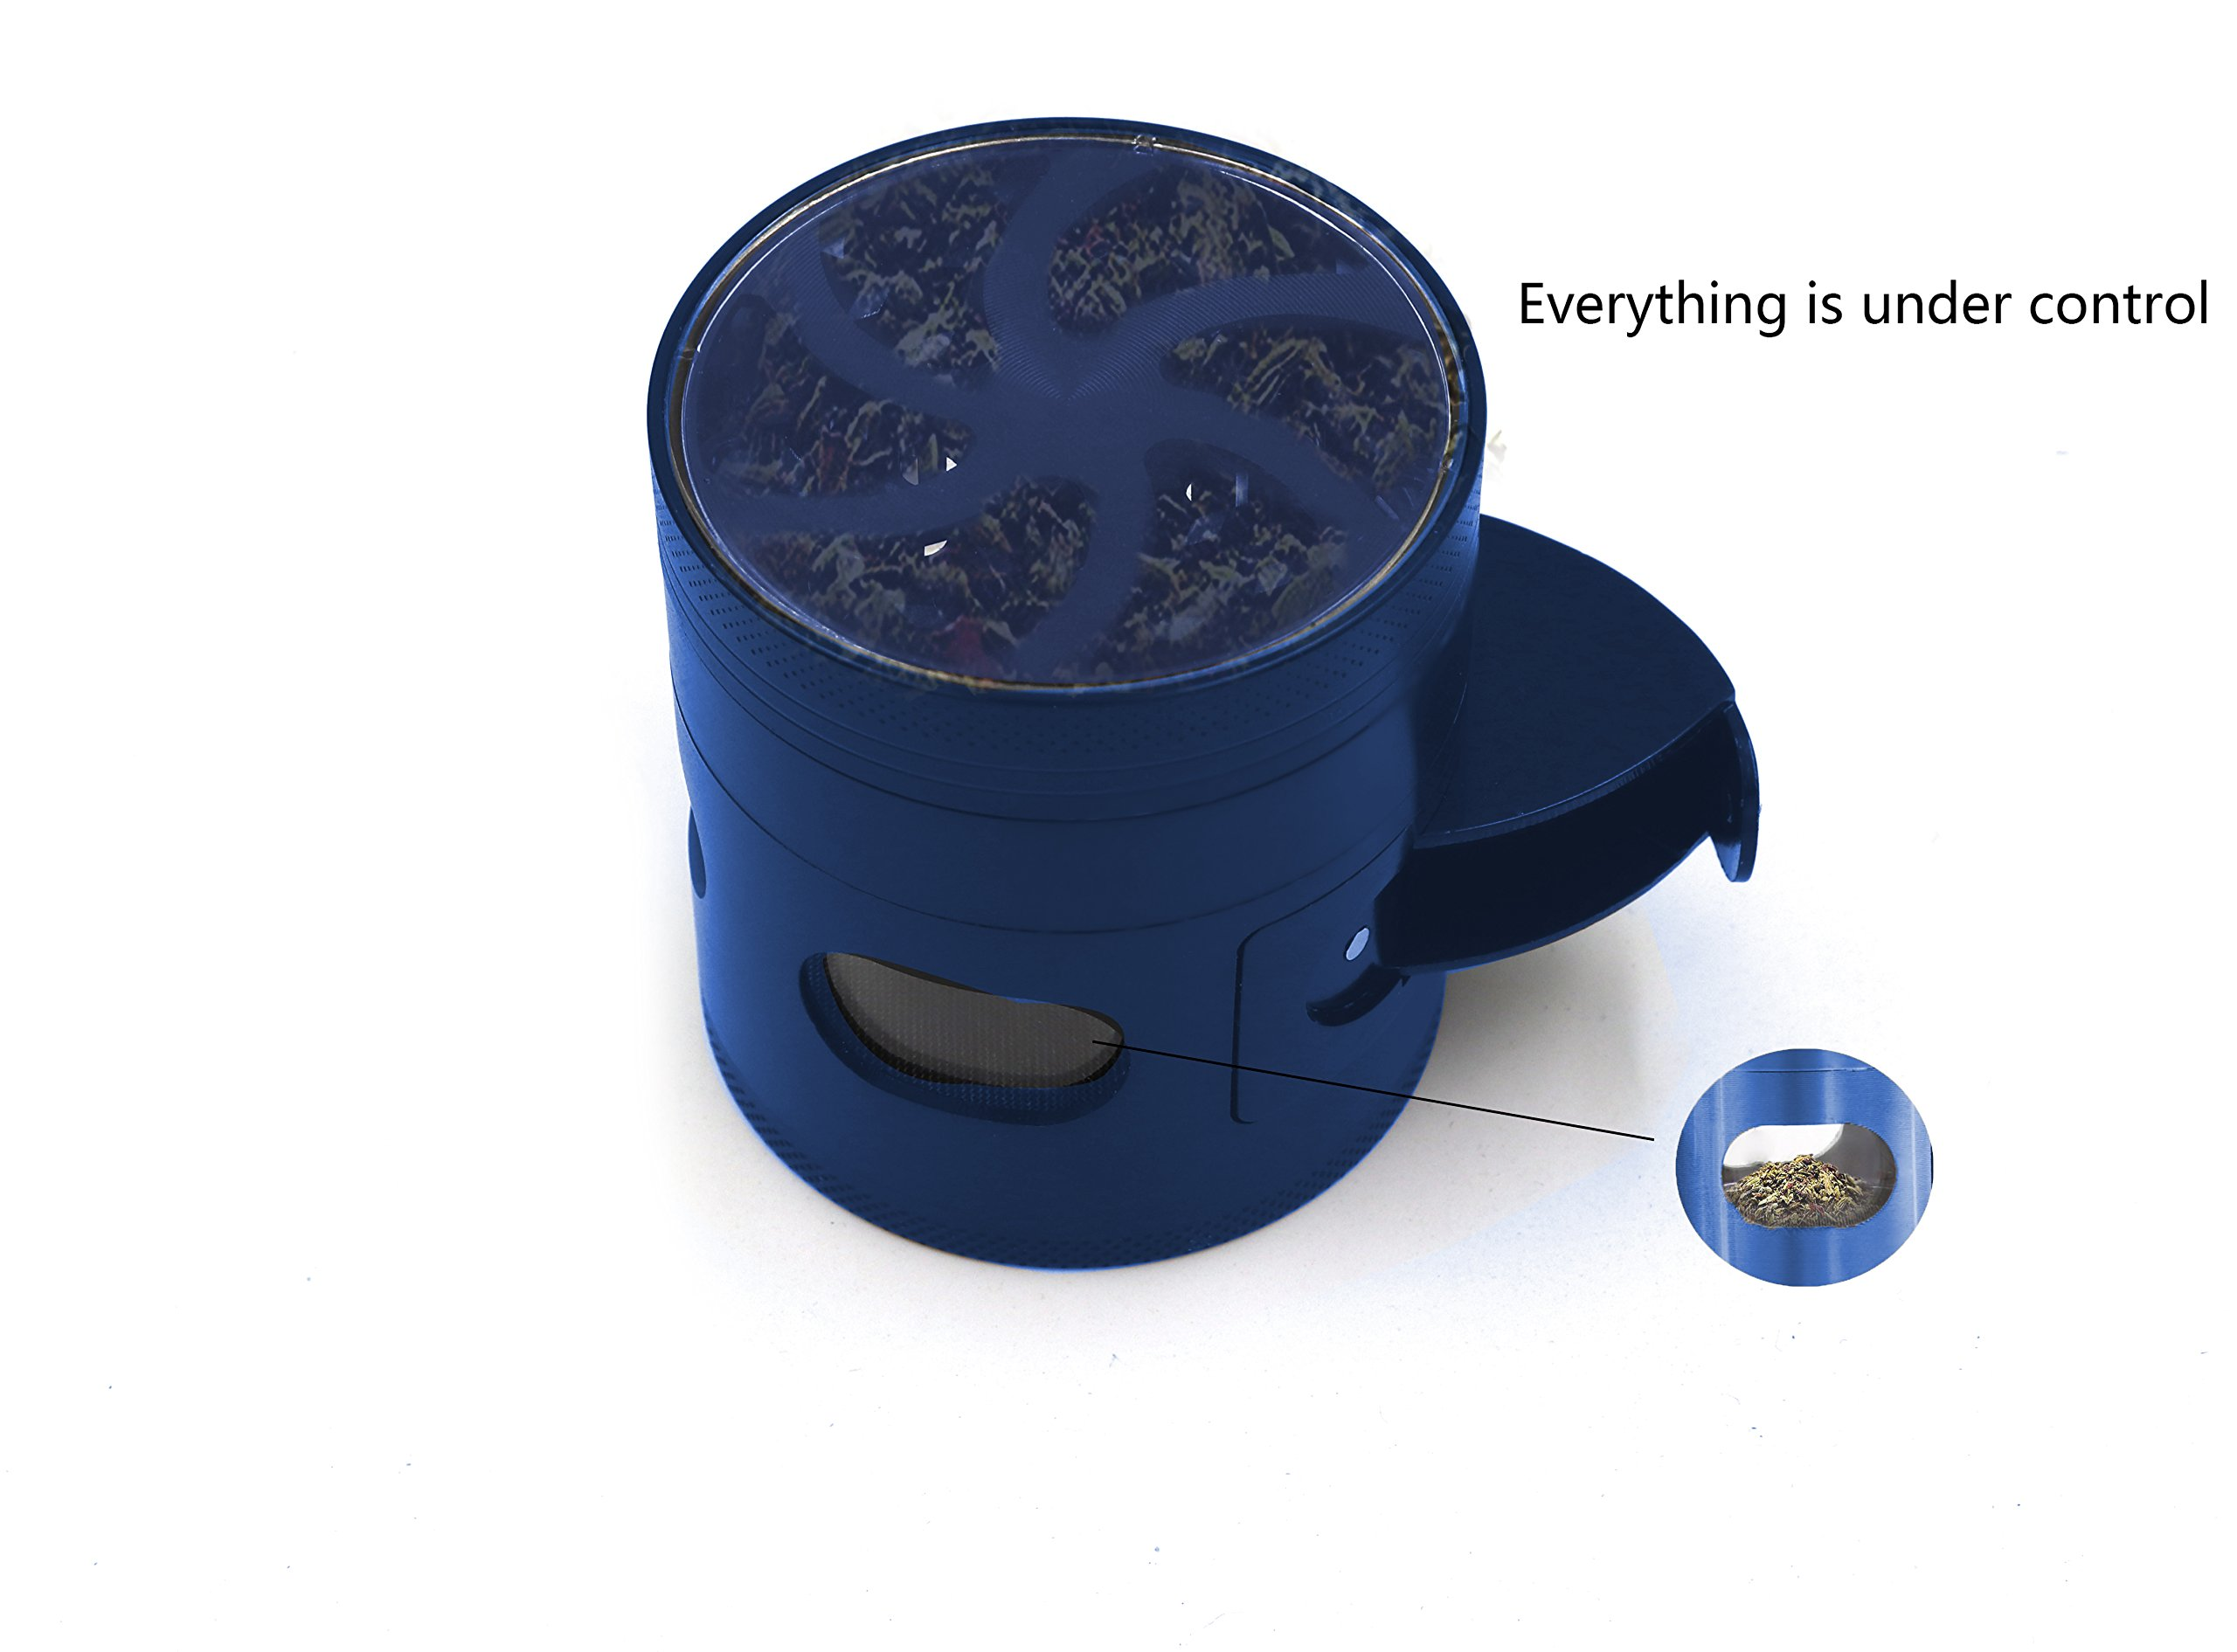 AIMAKE New Design Herb Weed& Spice 4 Piece Large 2.5 Inches Flash Windows Mills Grinder with Pollen Catcher(Blue) by aiMaKE (Image #5)